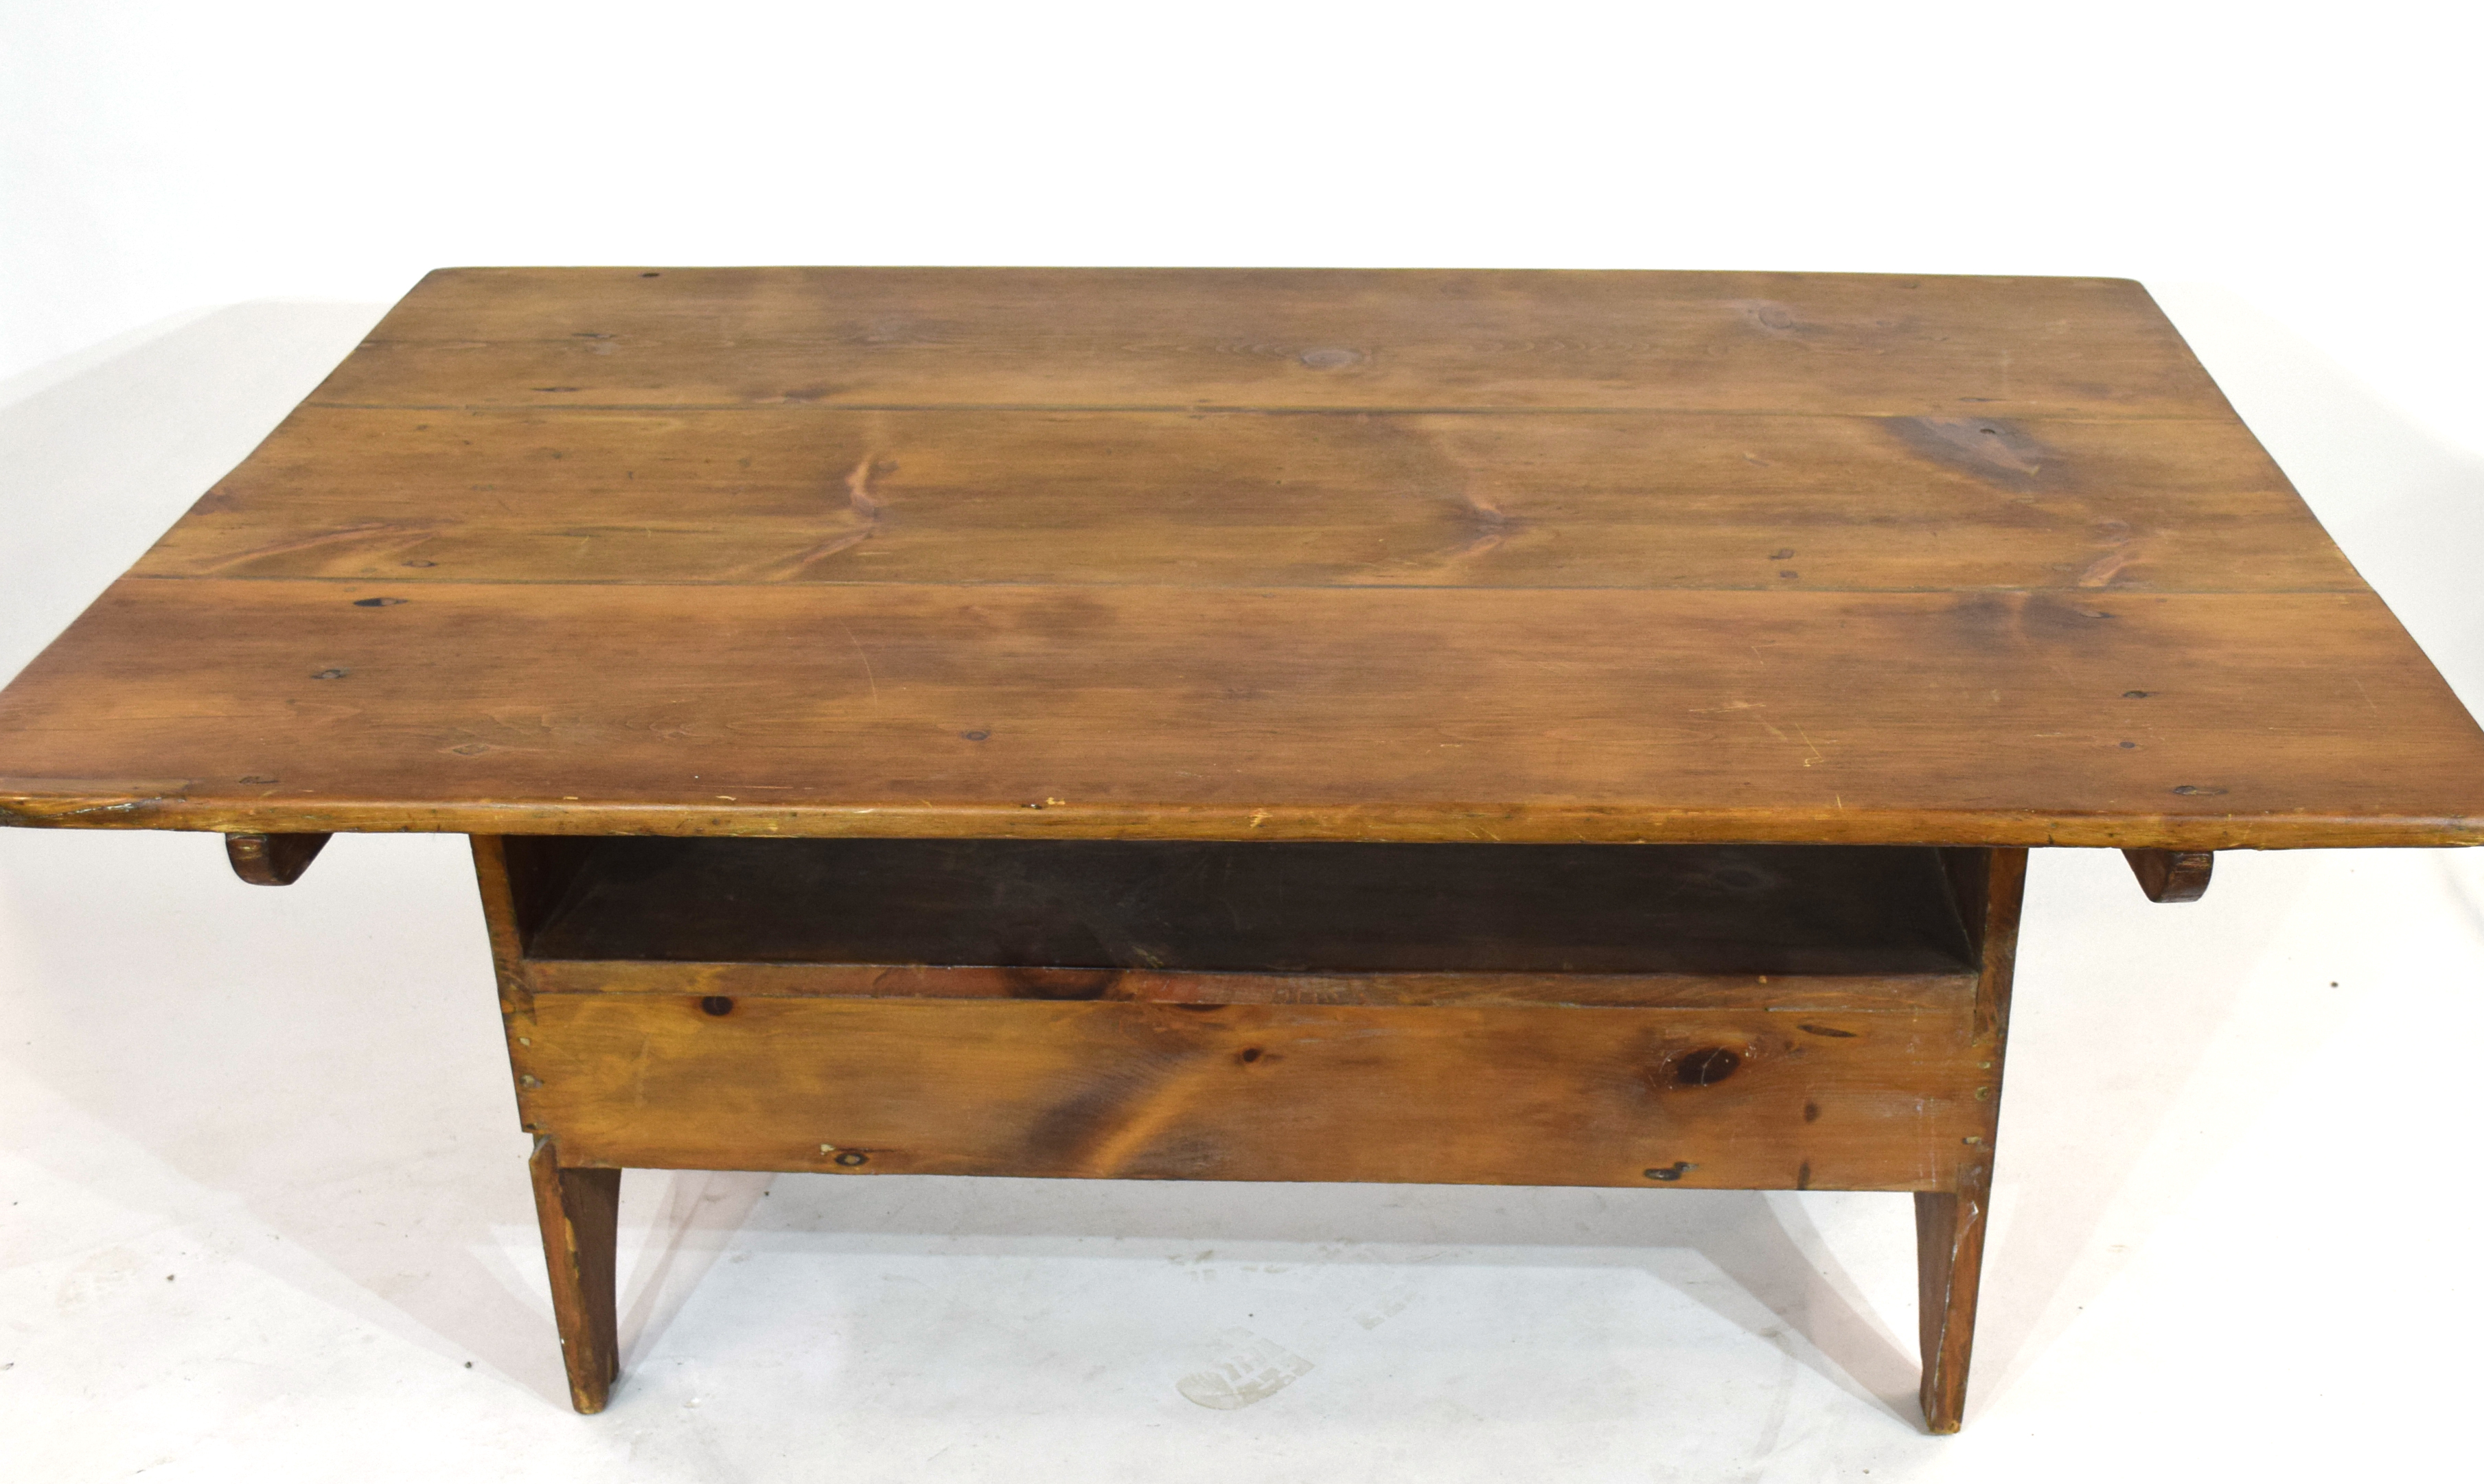 Unusual 20th century stained pine kitchen table, the rectangular top with pegged attachment to a